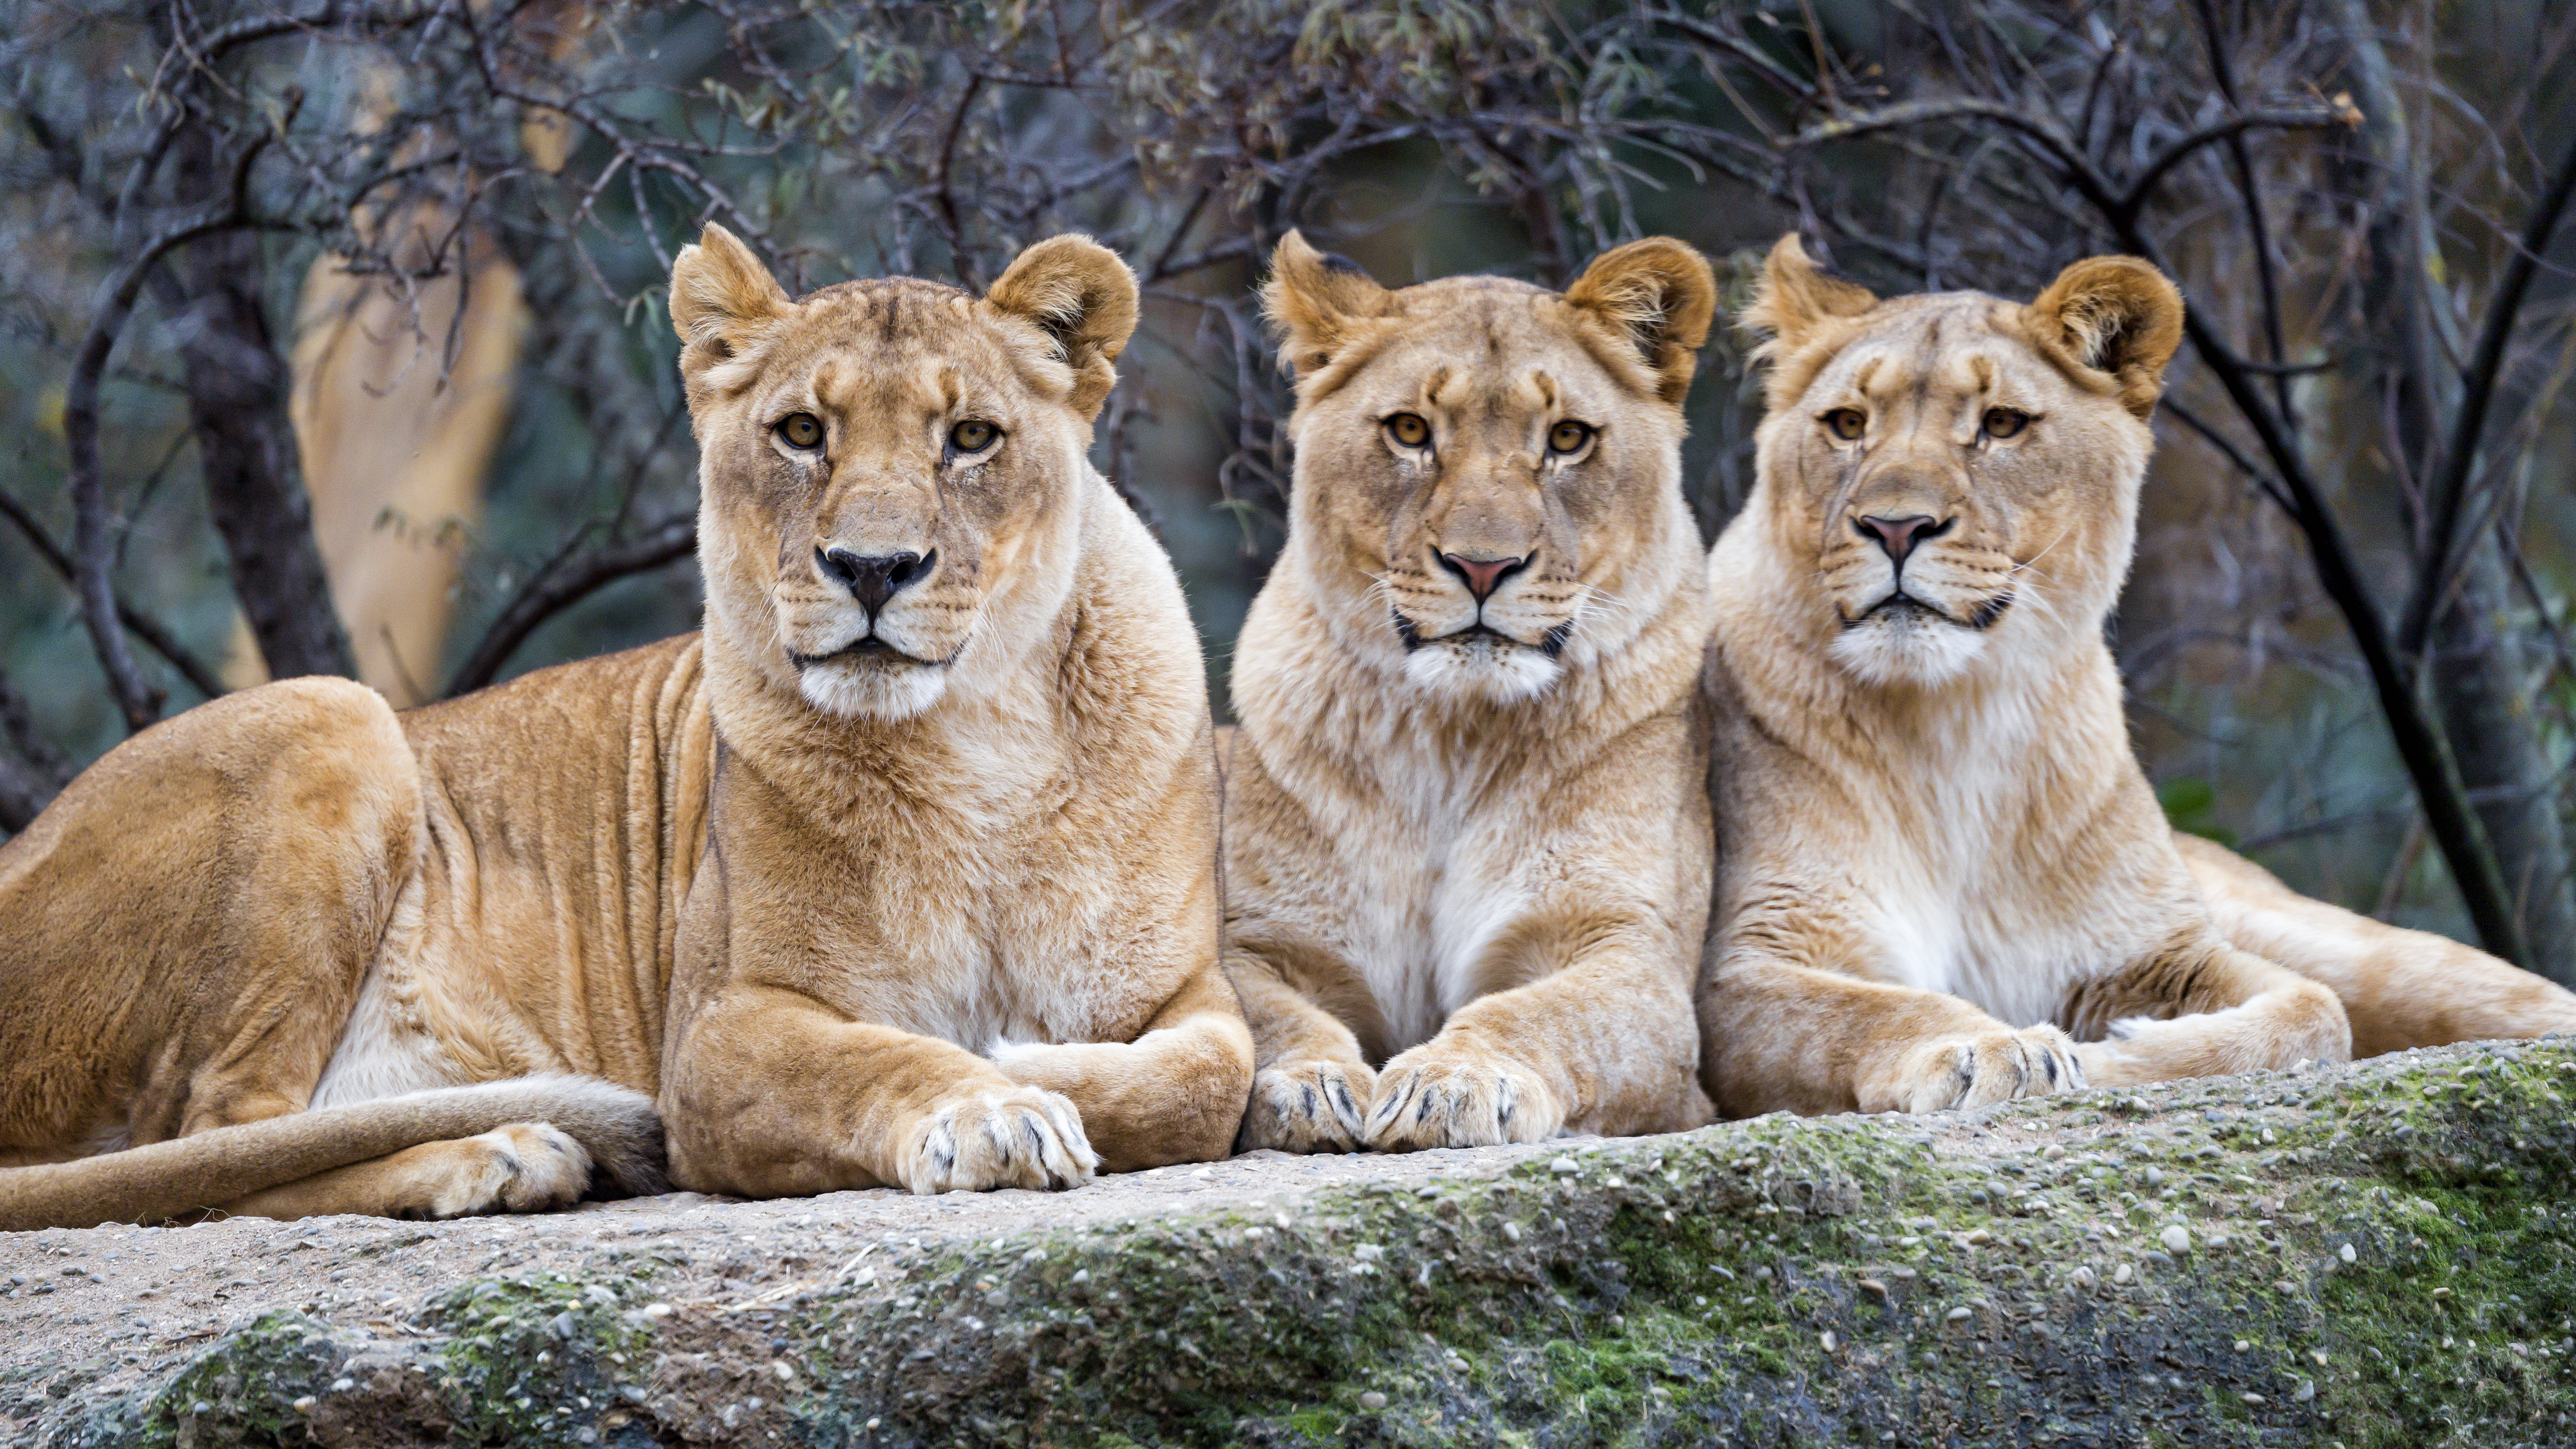 110108 download wallpaper Animals, Lioness, Sight, Opinion, Big Cat, Predator screensavers and pictures for free